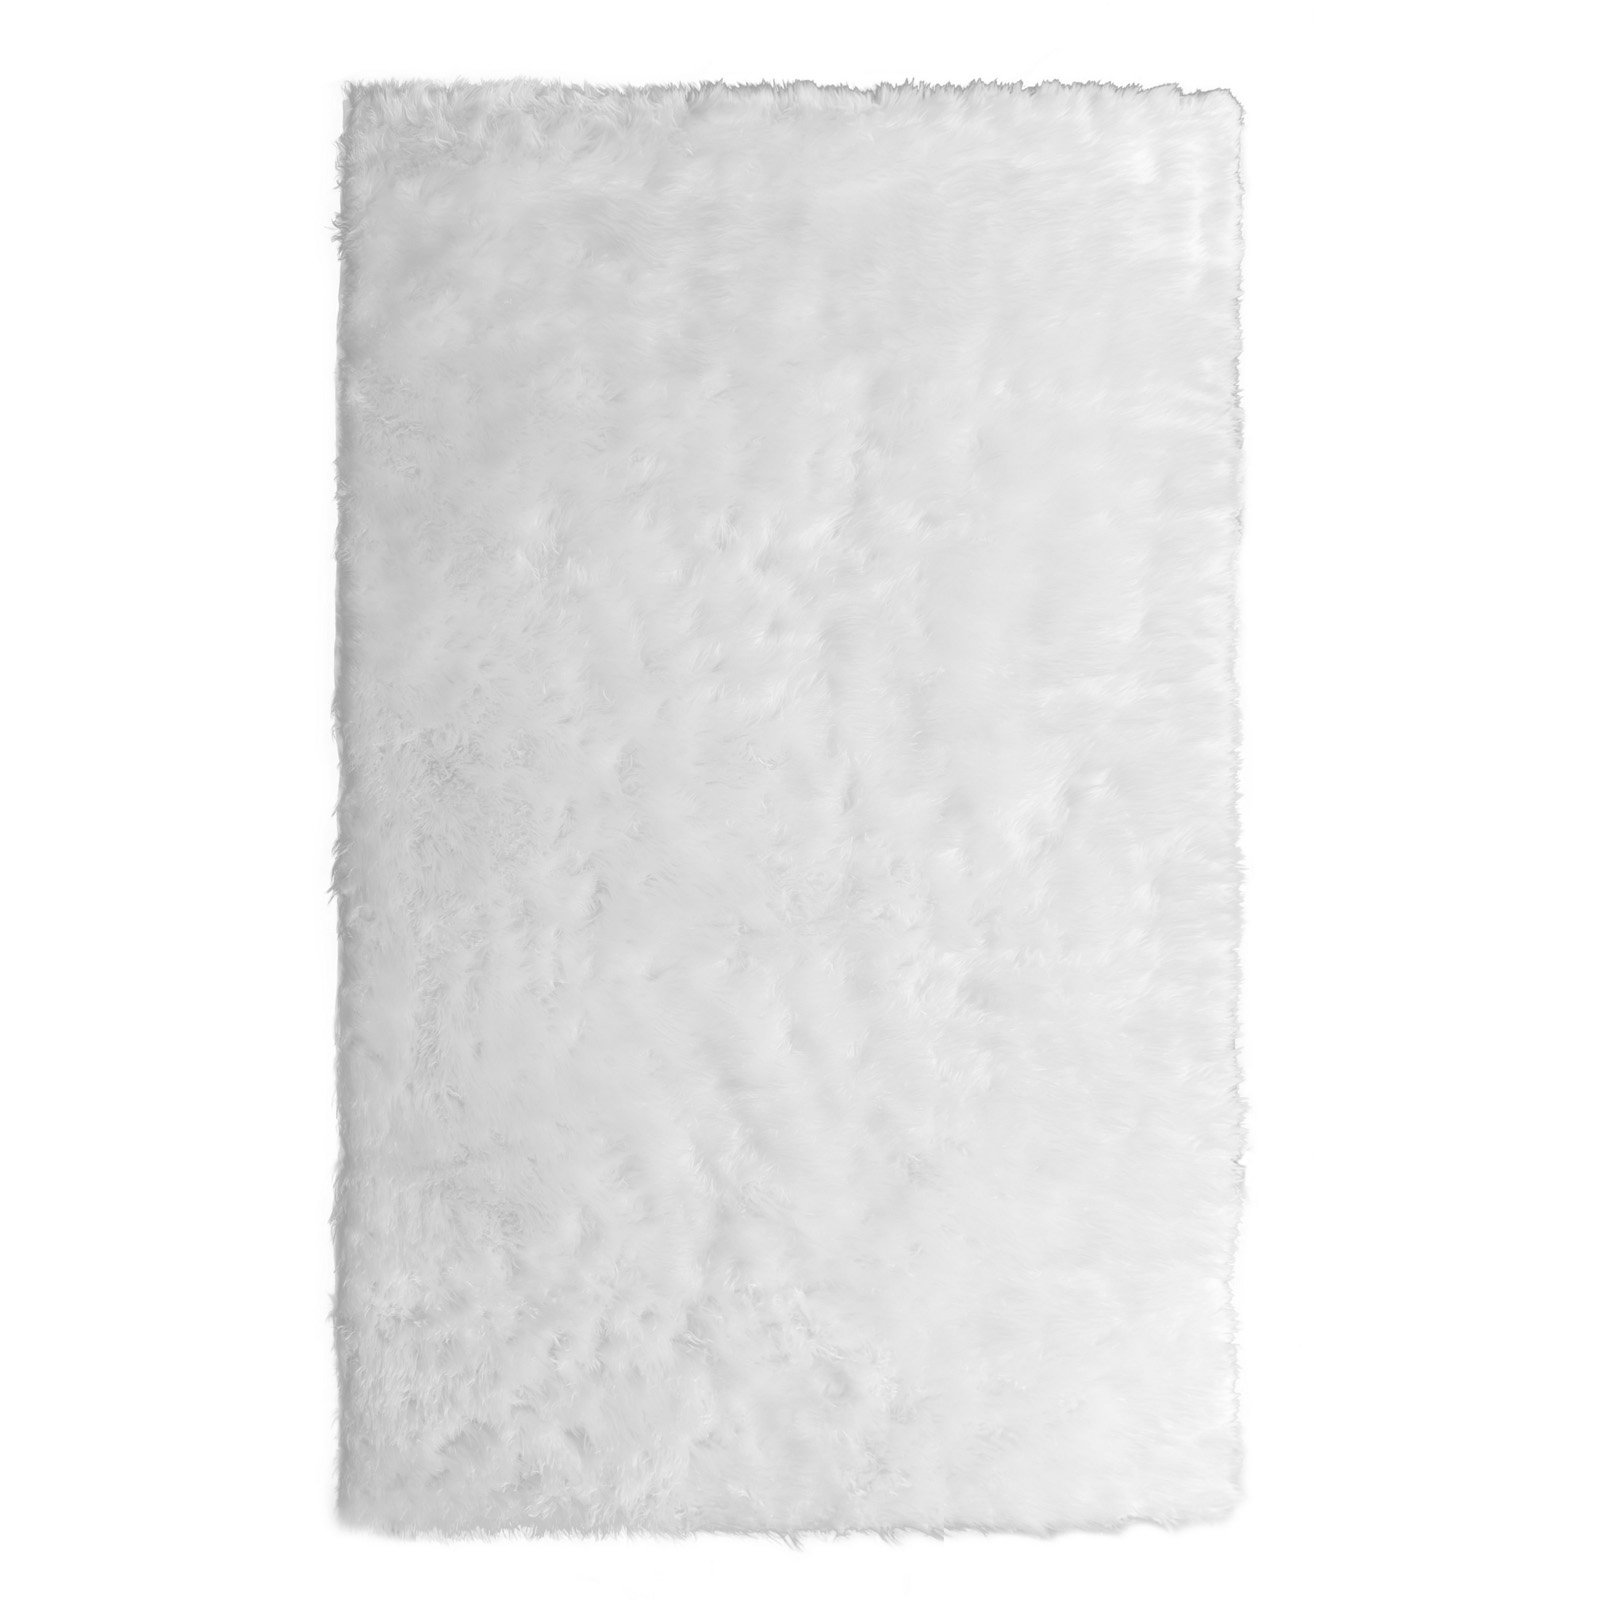 Aileen Faux Sheepskin Fur Area Rug White Rectangular 8x5 by Glamour Home